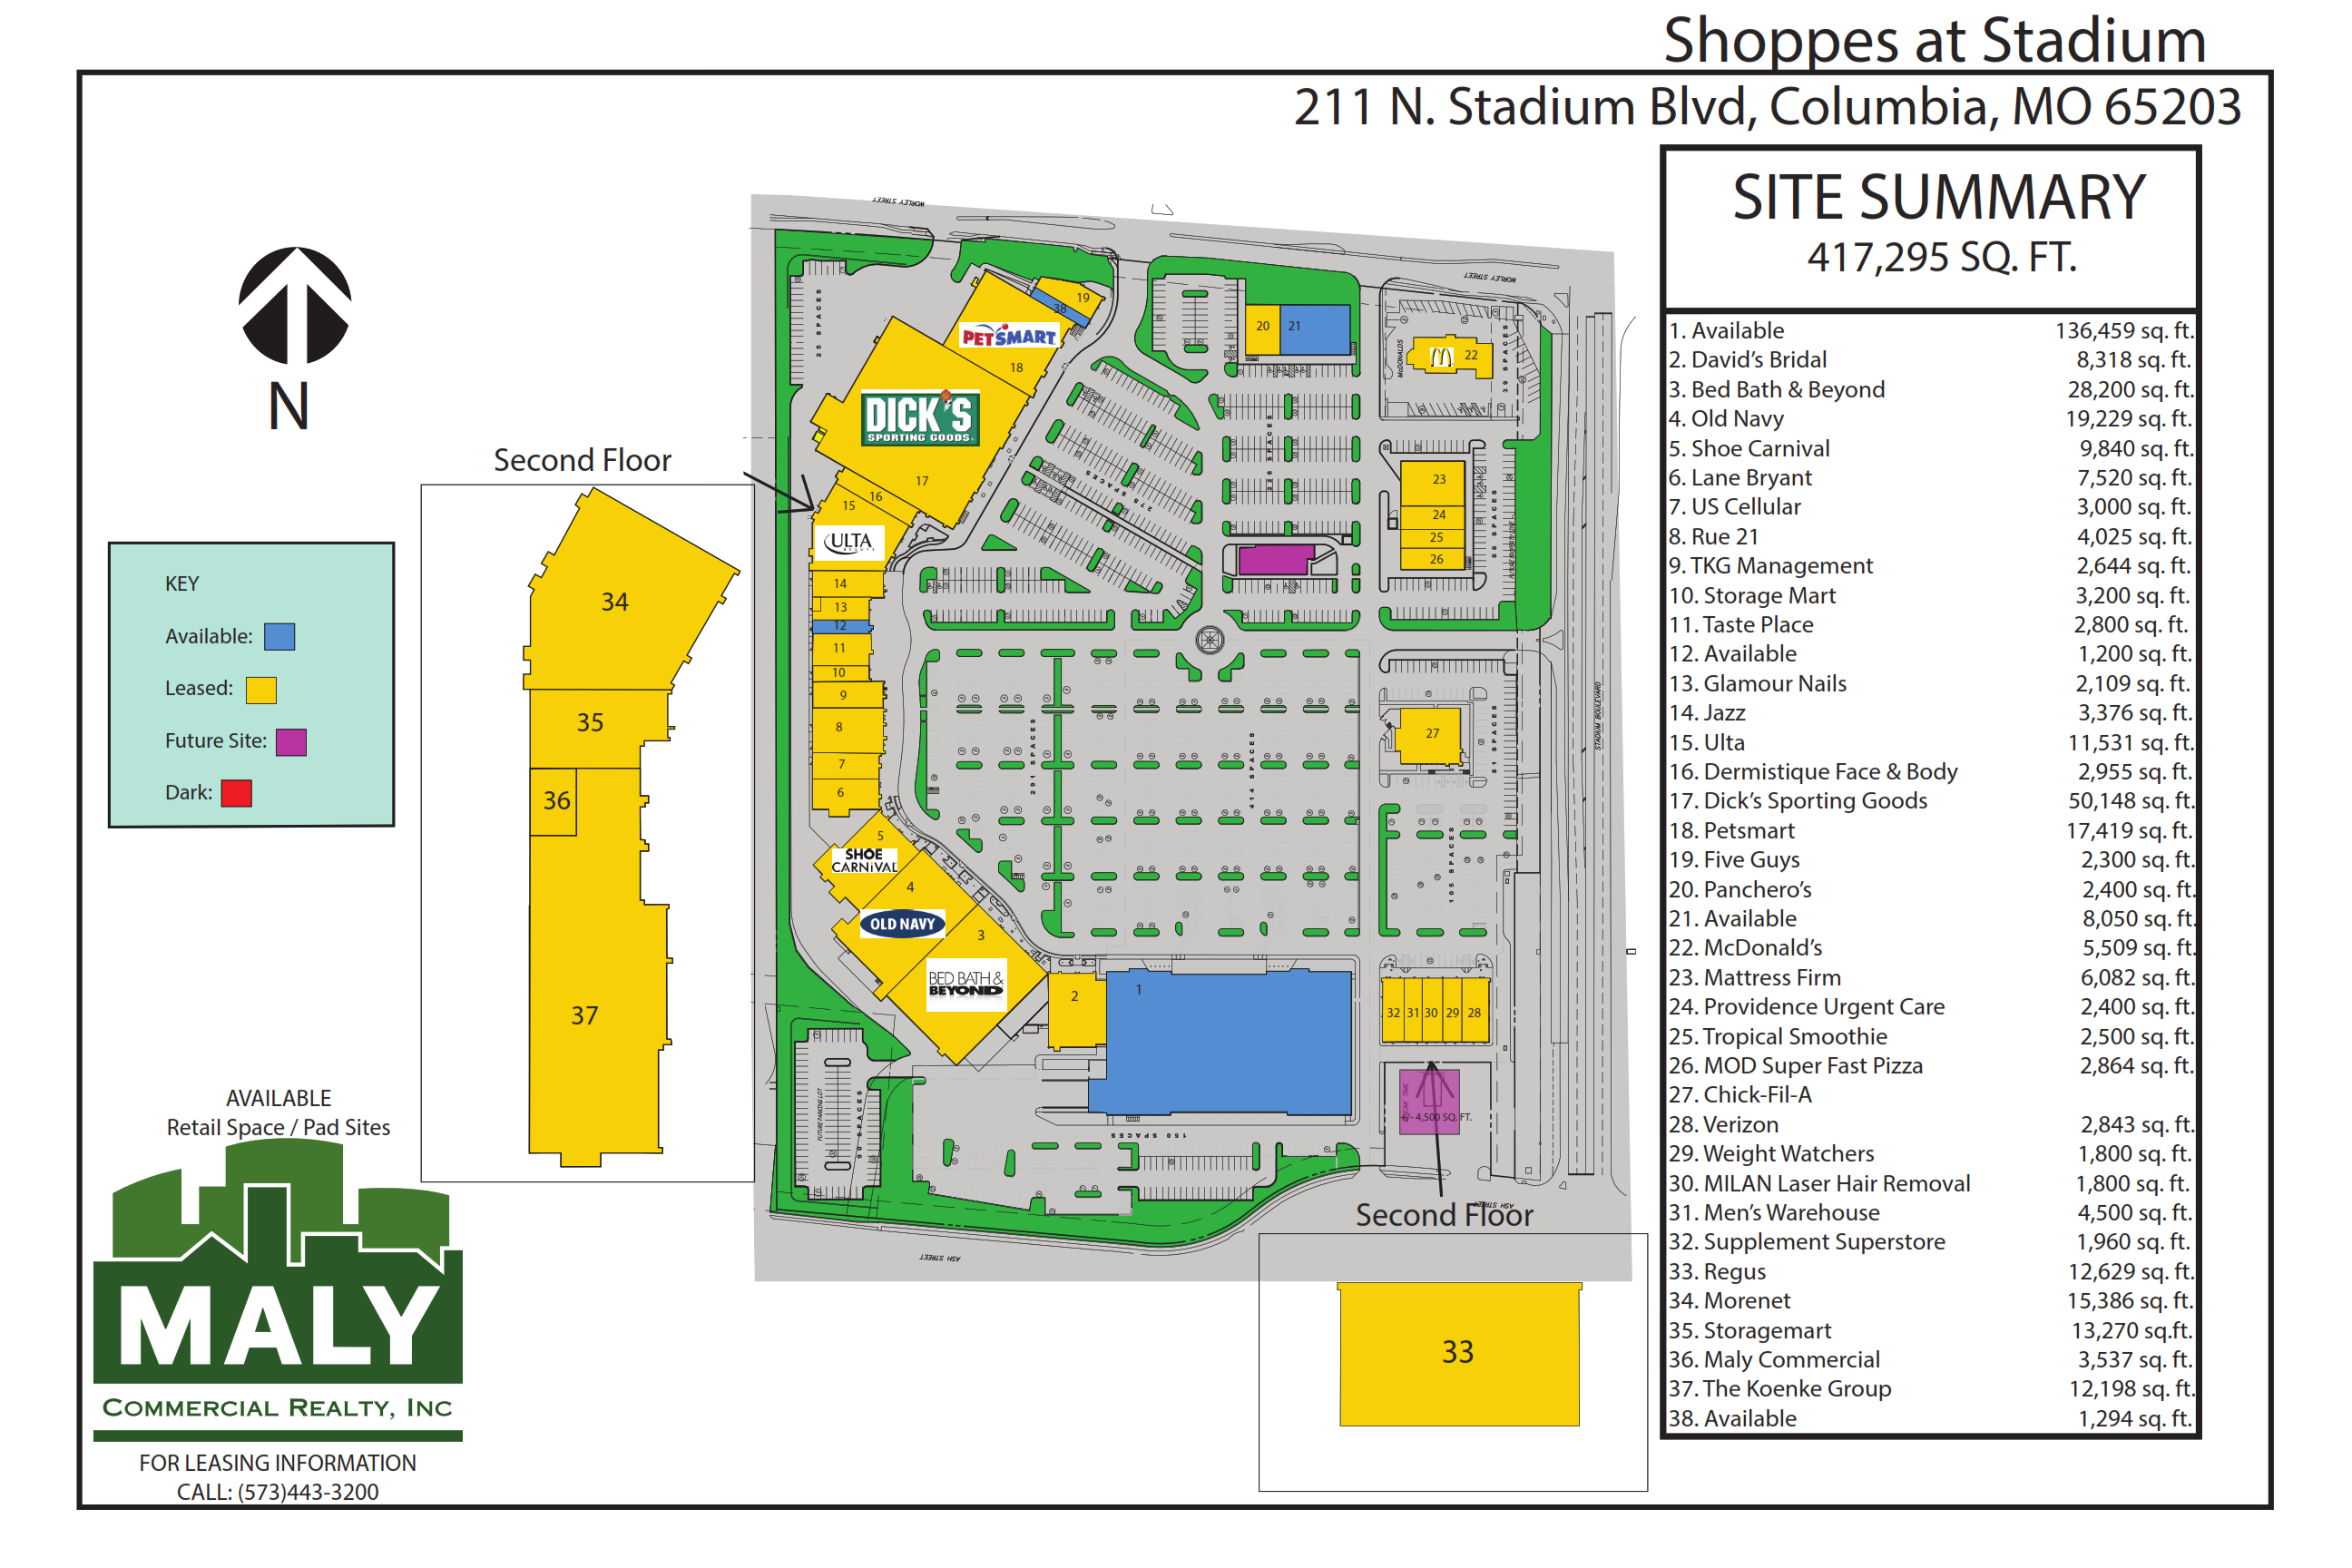 Shoppes at Stadium – Unit 38